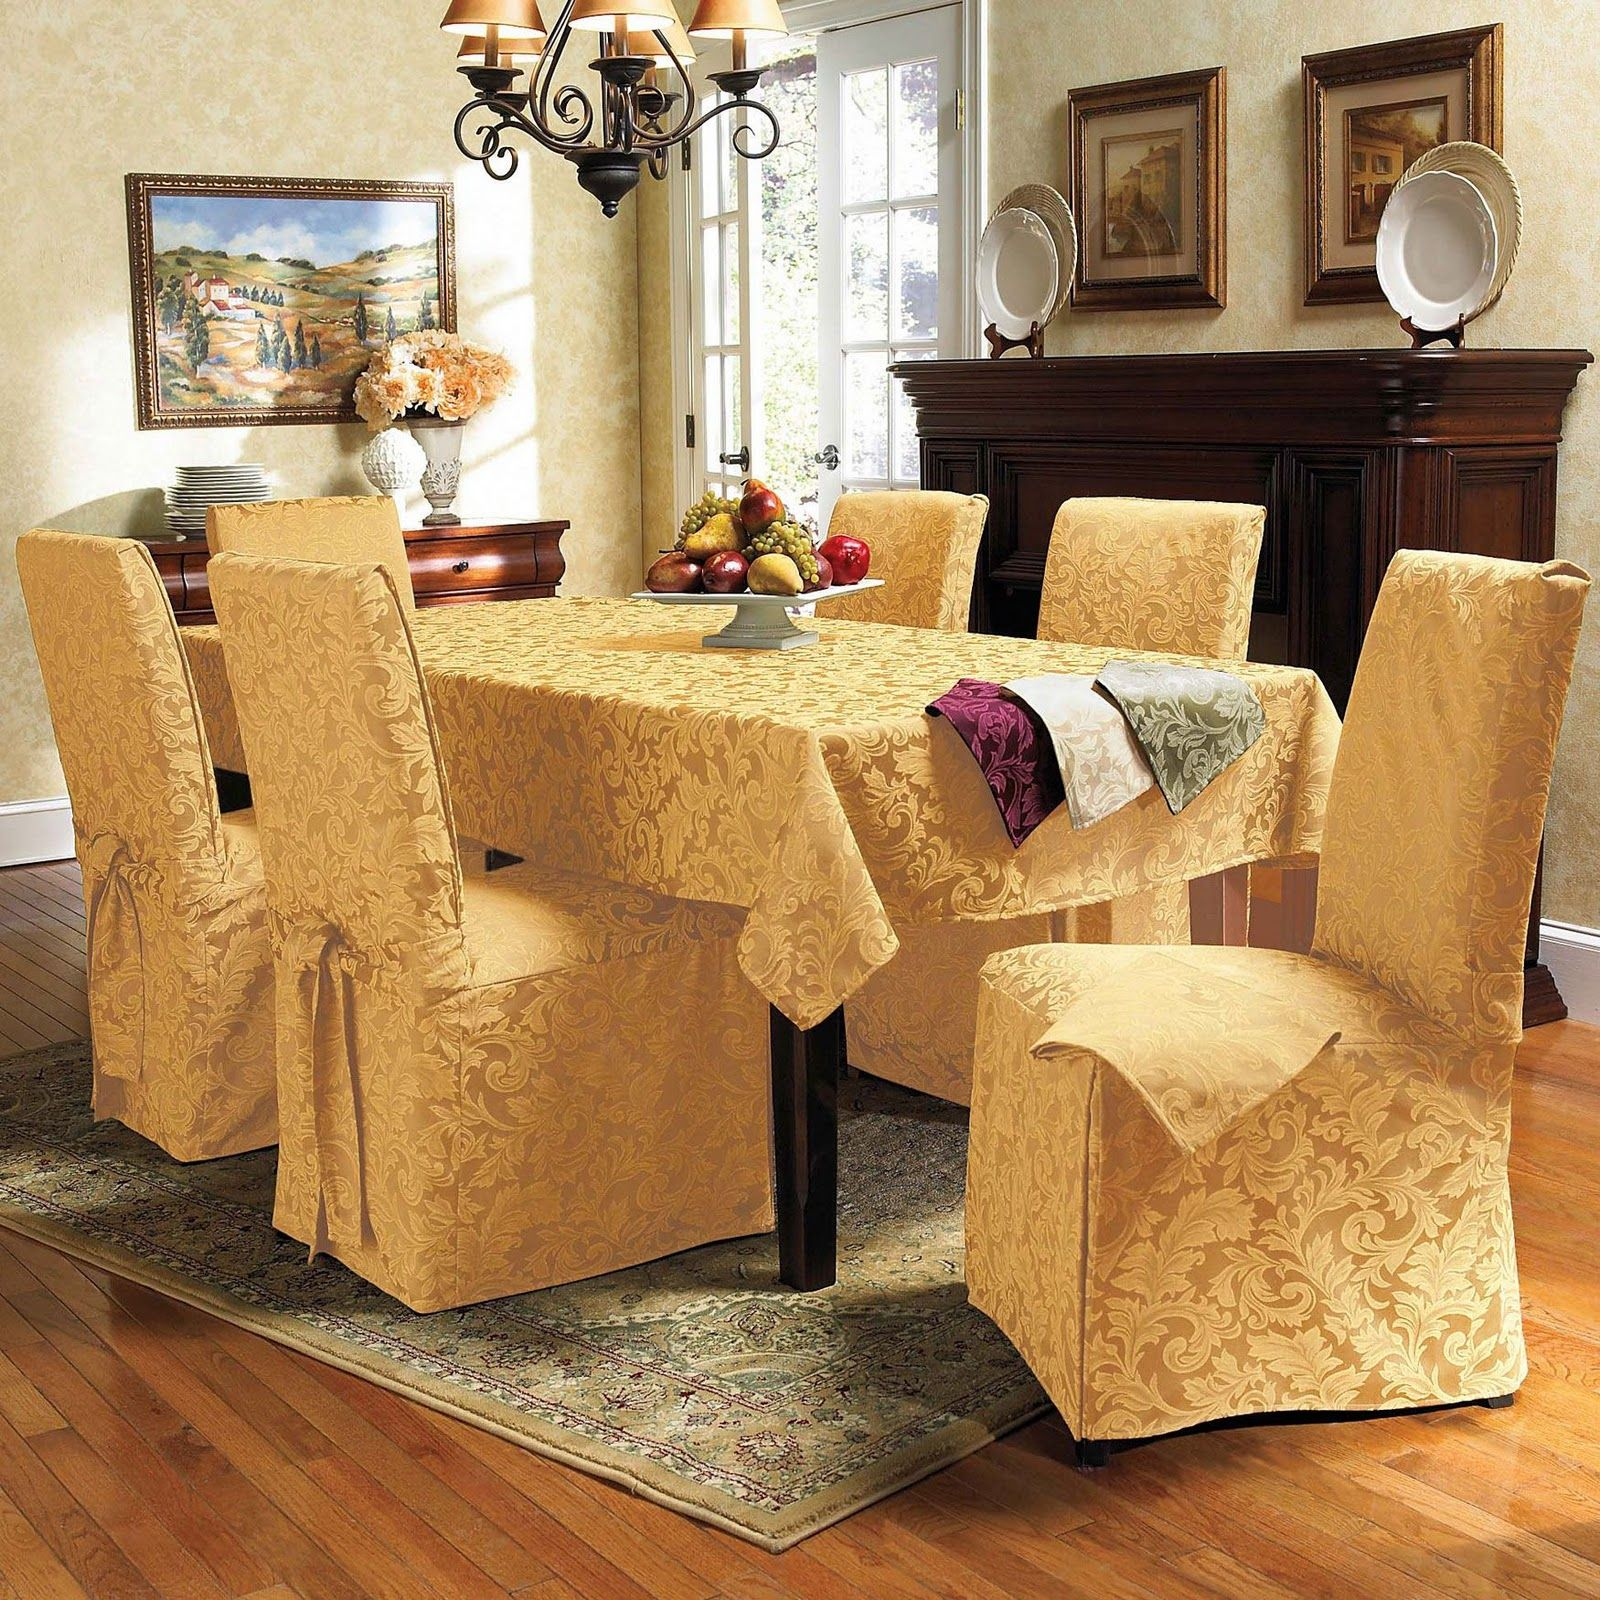 Classy Dining Table Chair Cover Top Home Design Planning